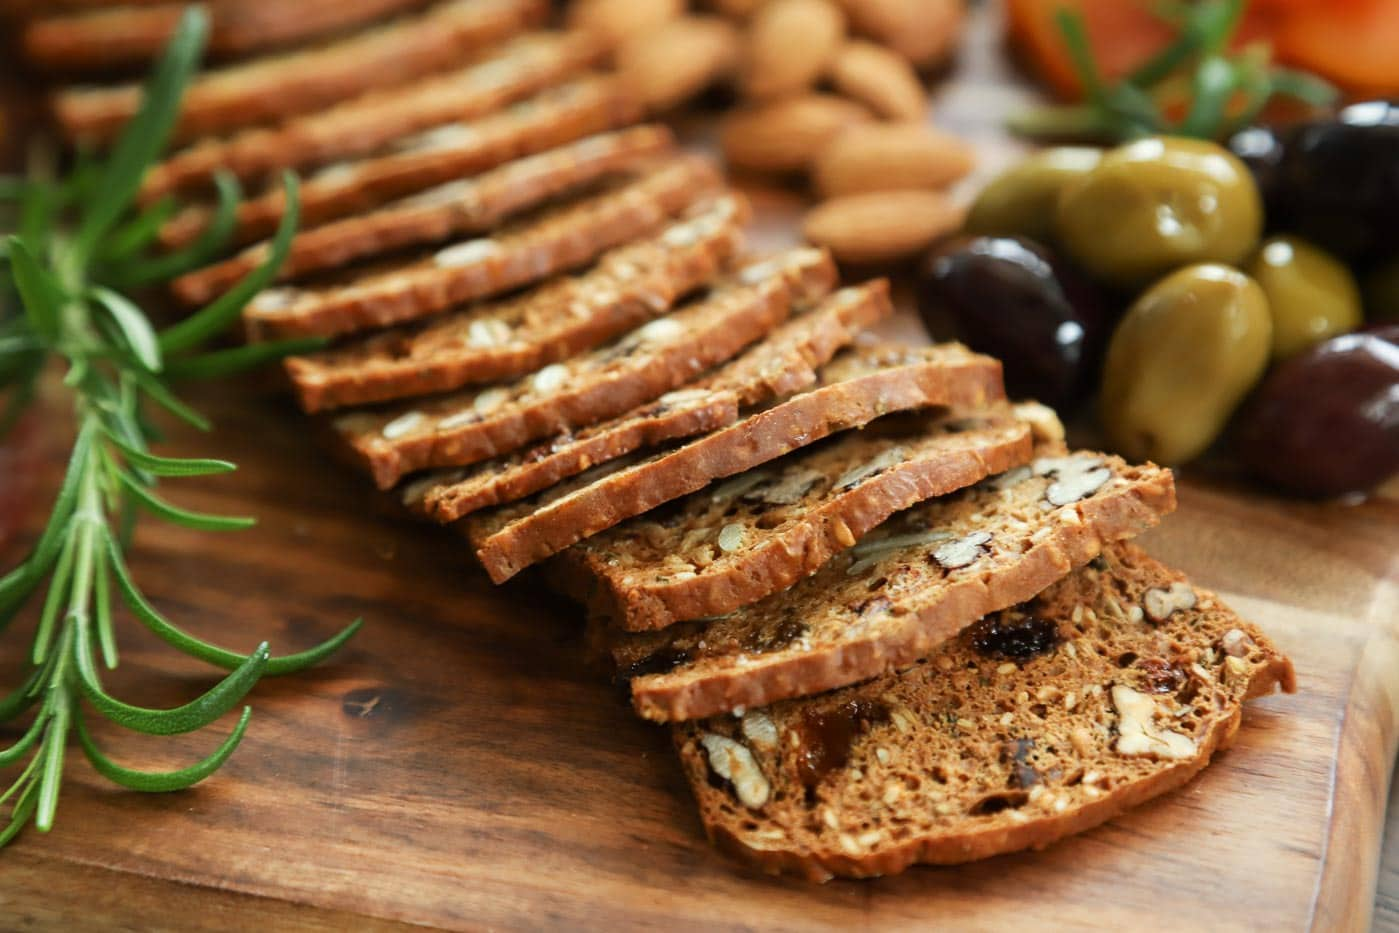 Photo of a row of Rosemary Raisin Pecan Crisps on a wood appetizer serving board with olives, almonds and a sprig of rosemary.